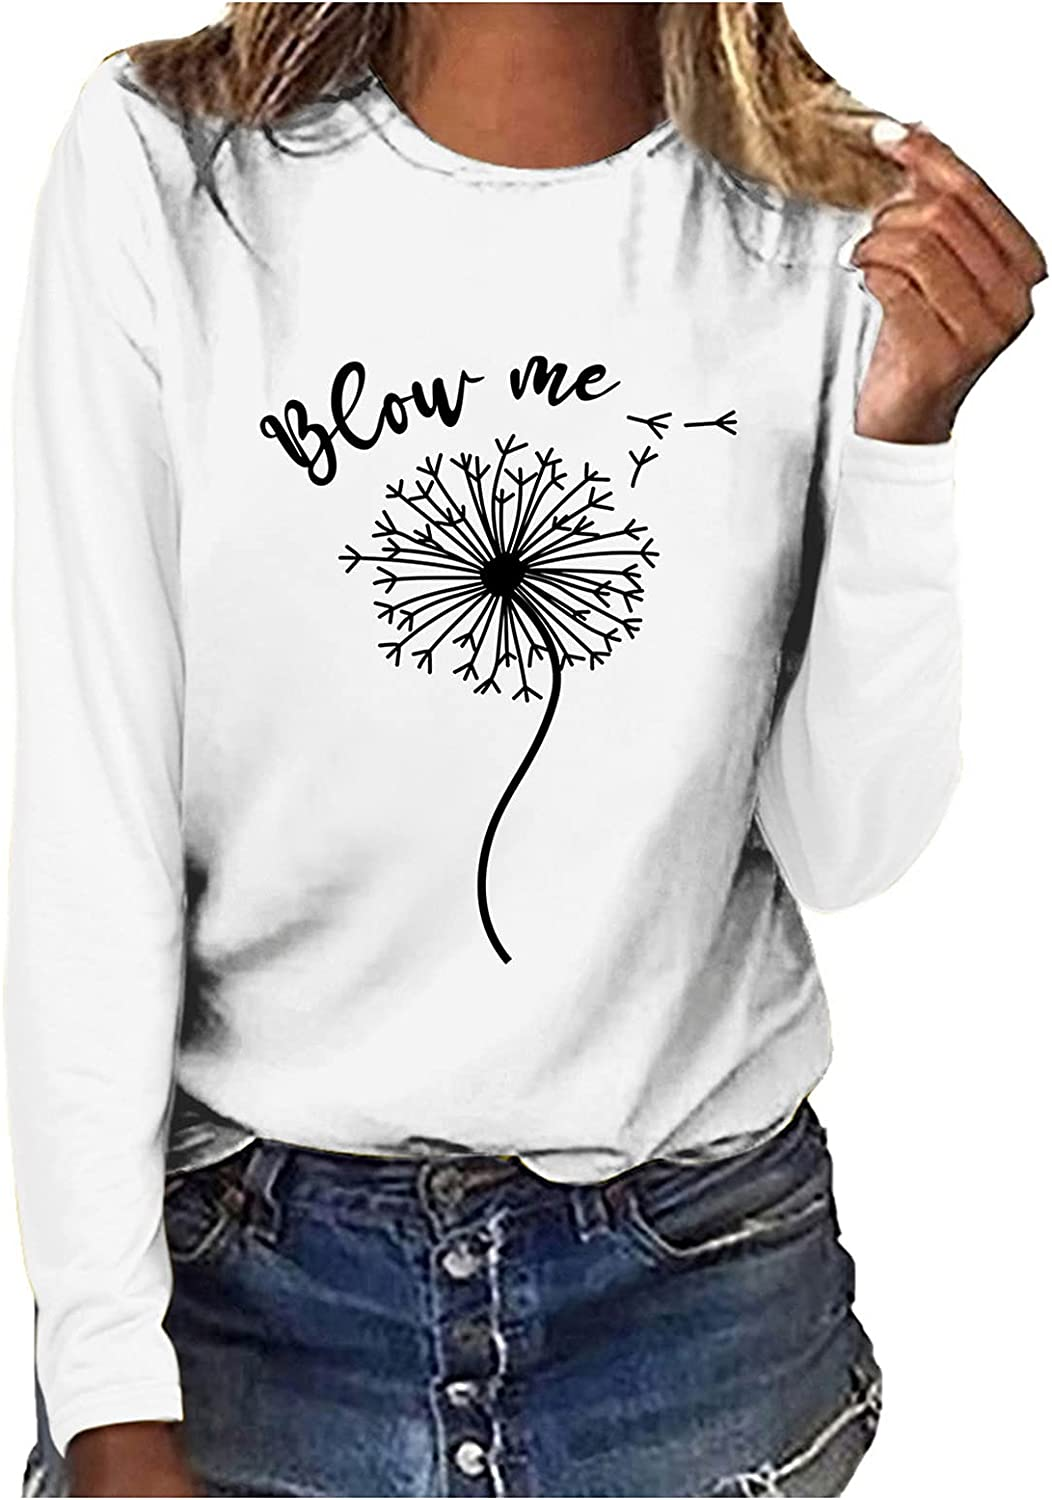 Womens Long Sleeve Tops Loose Fit Fall Crewneck T-Shirt Tunic Tops Blouse Shirts Pullover